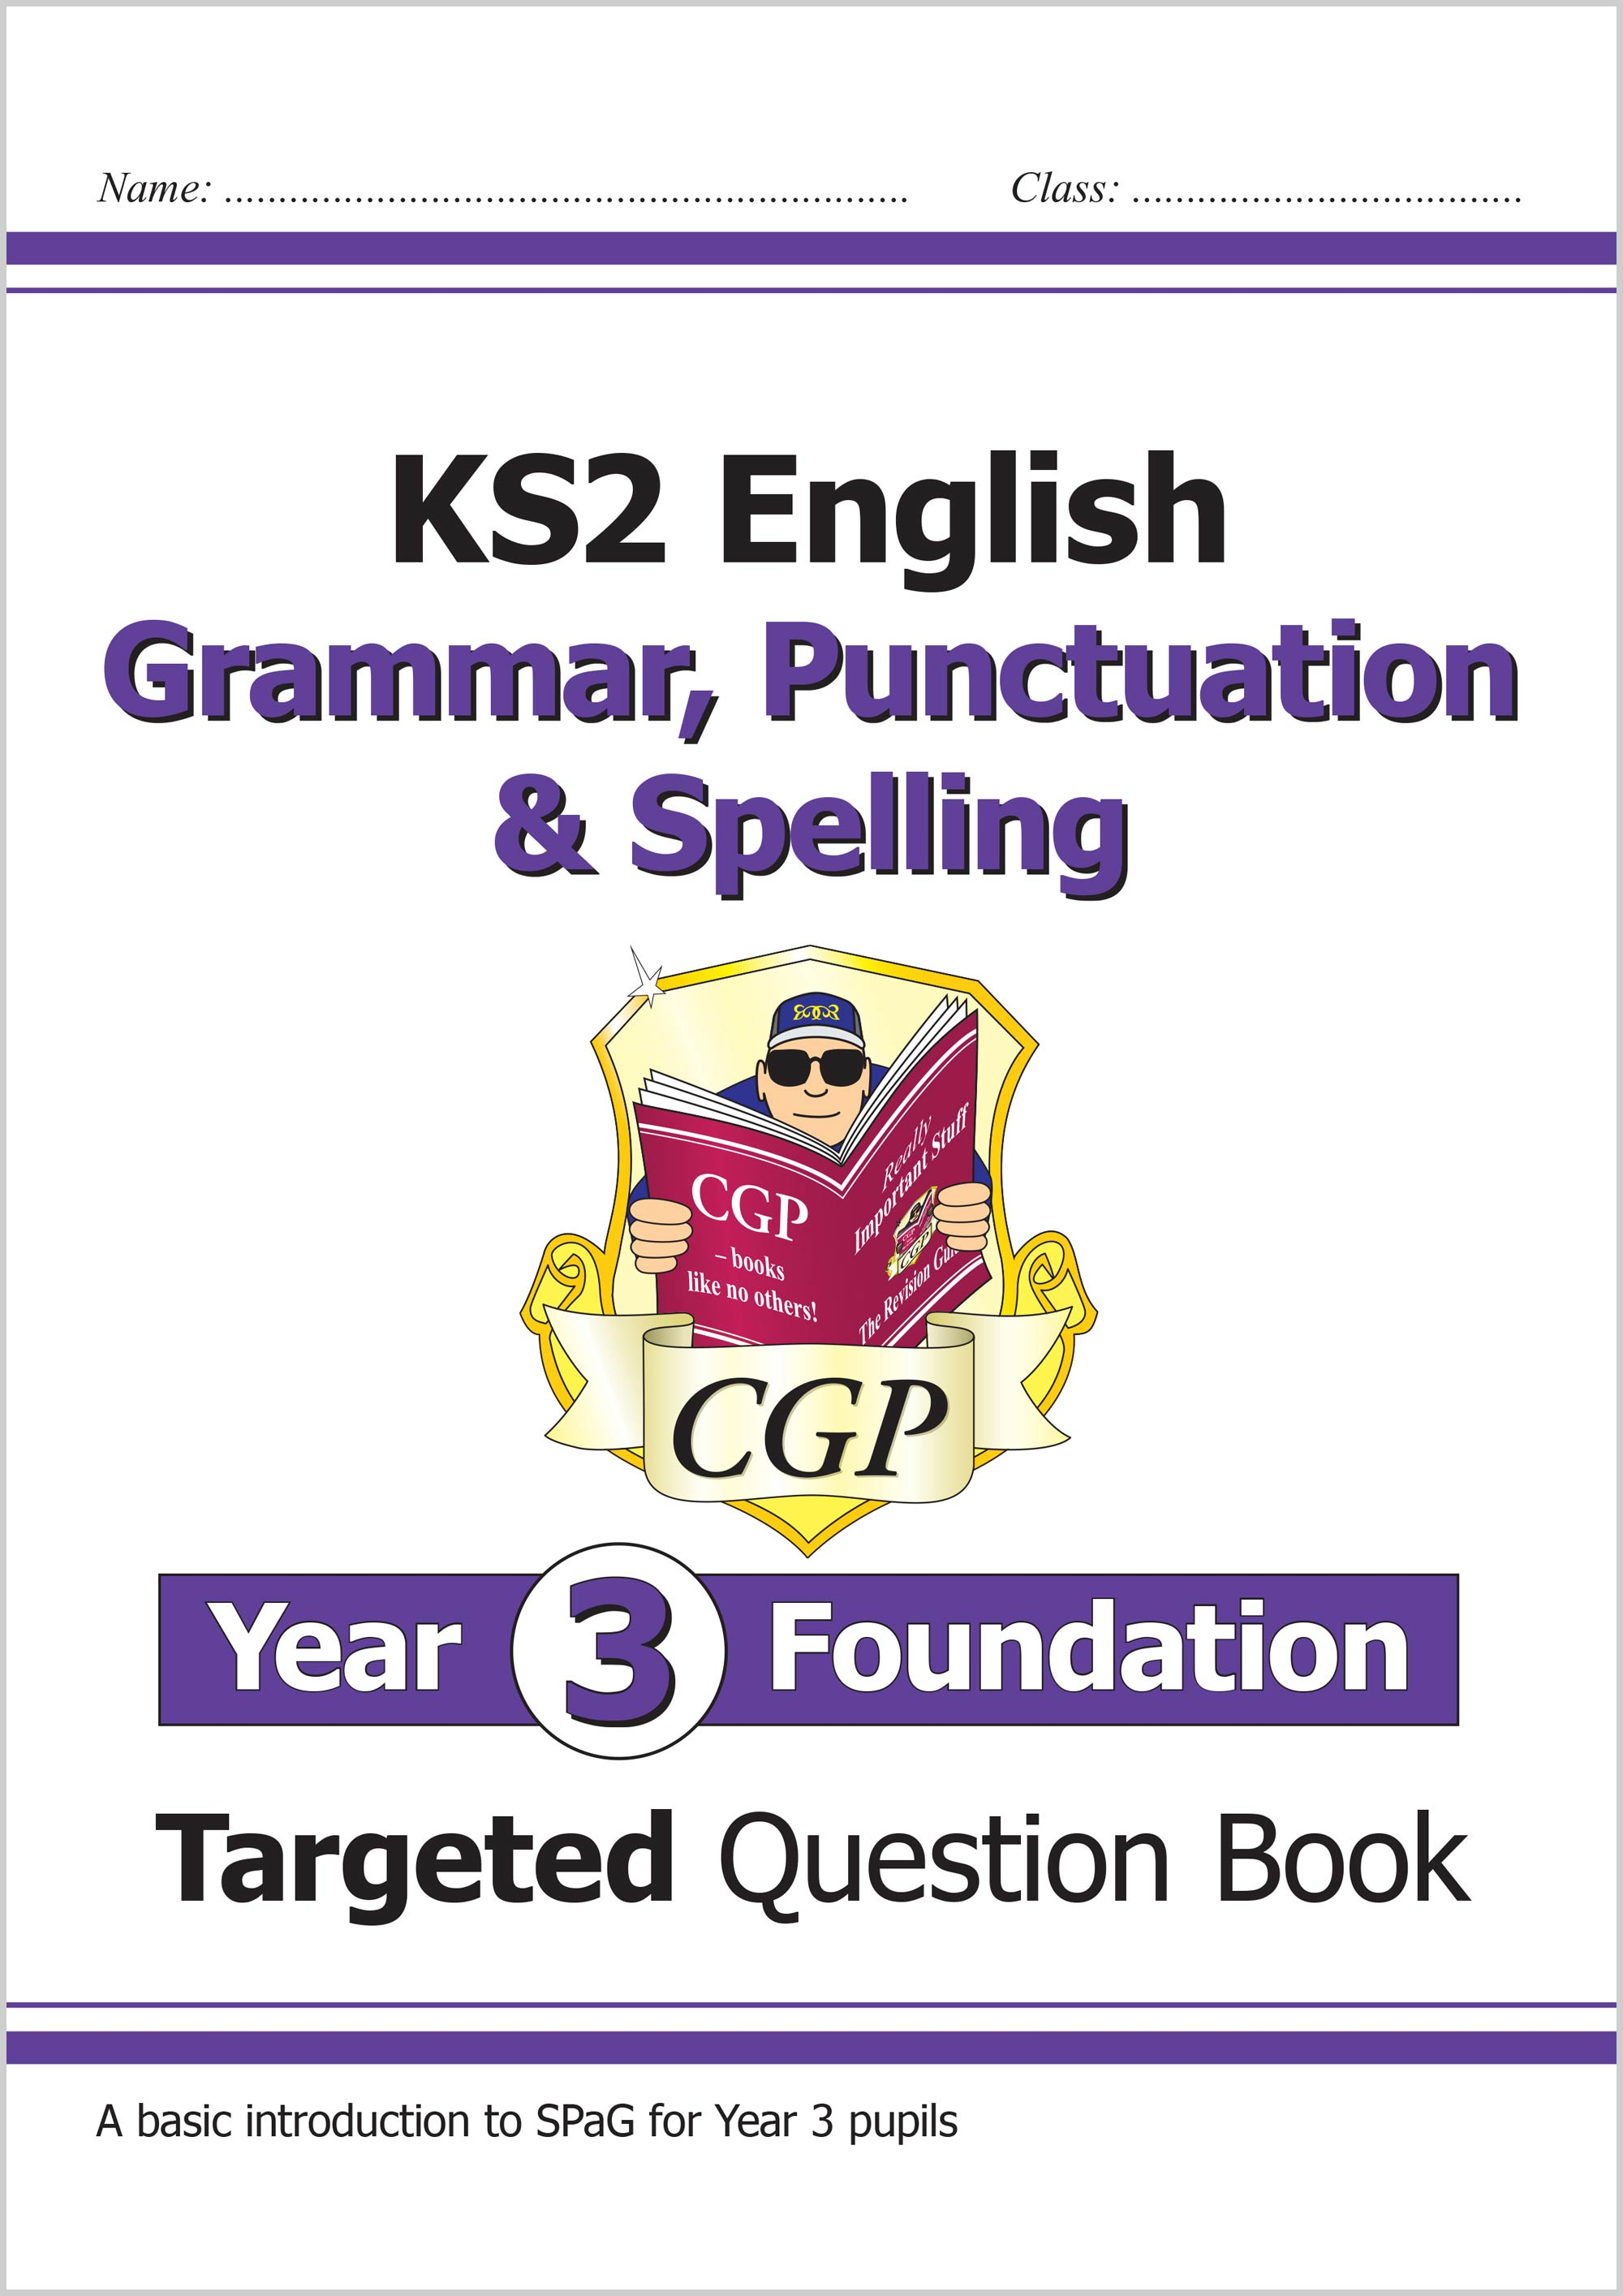 EG3FW21 - New KS2 English Targeted Question Book: Grammar, Punctuation & Spelling - Year 3 Foundatio